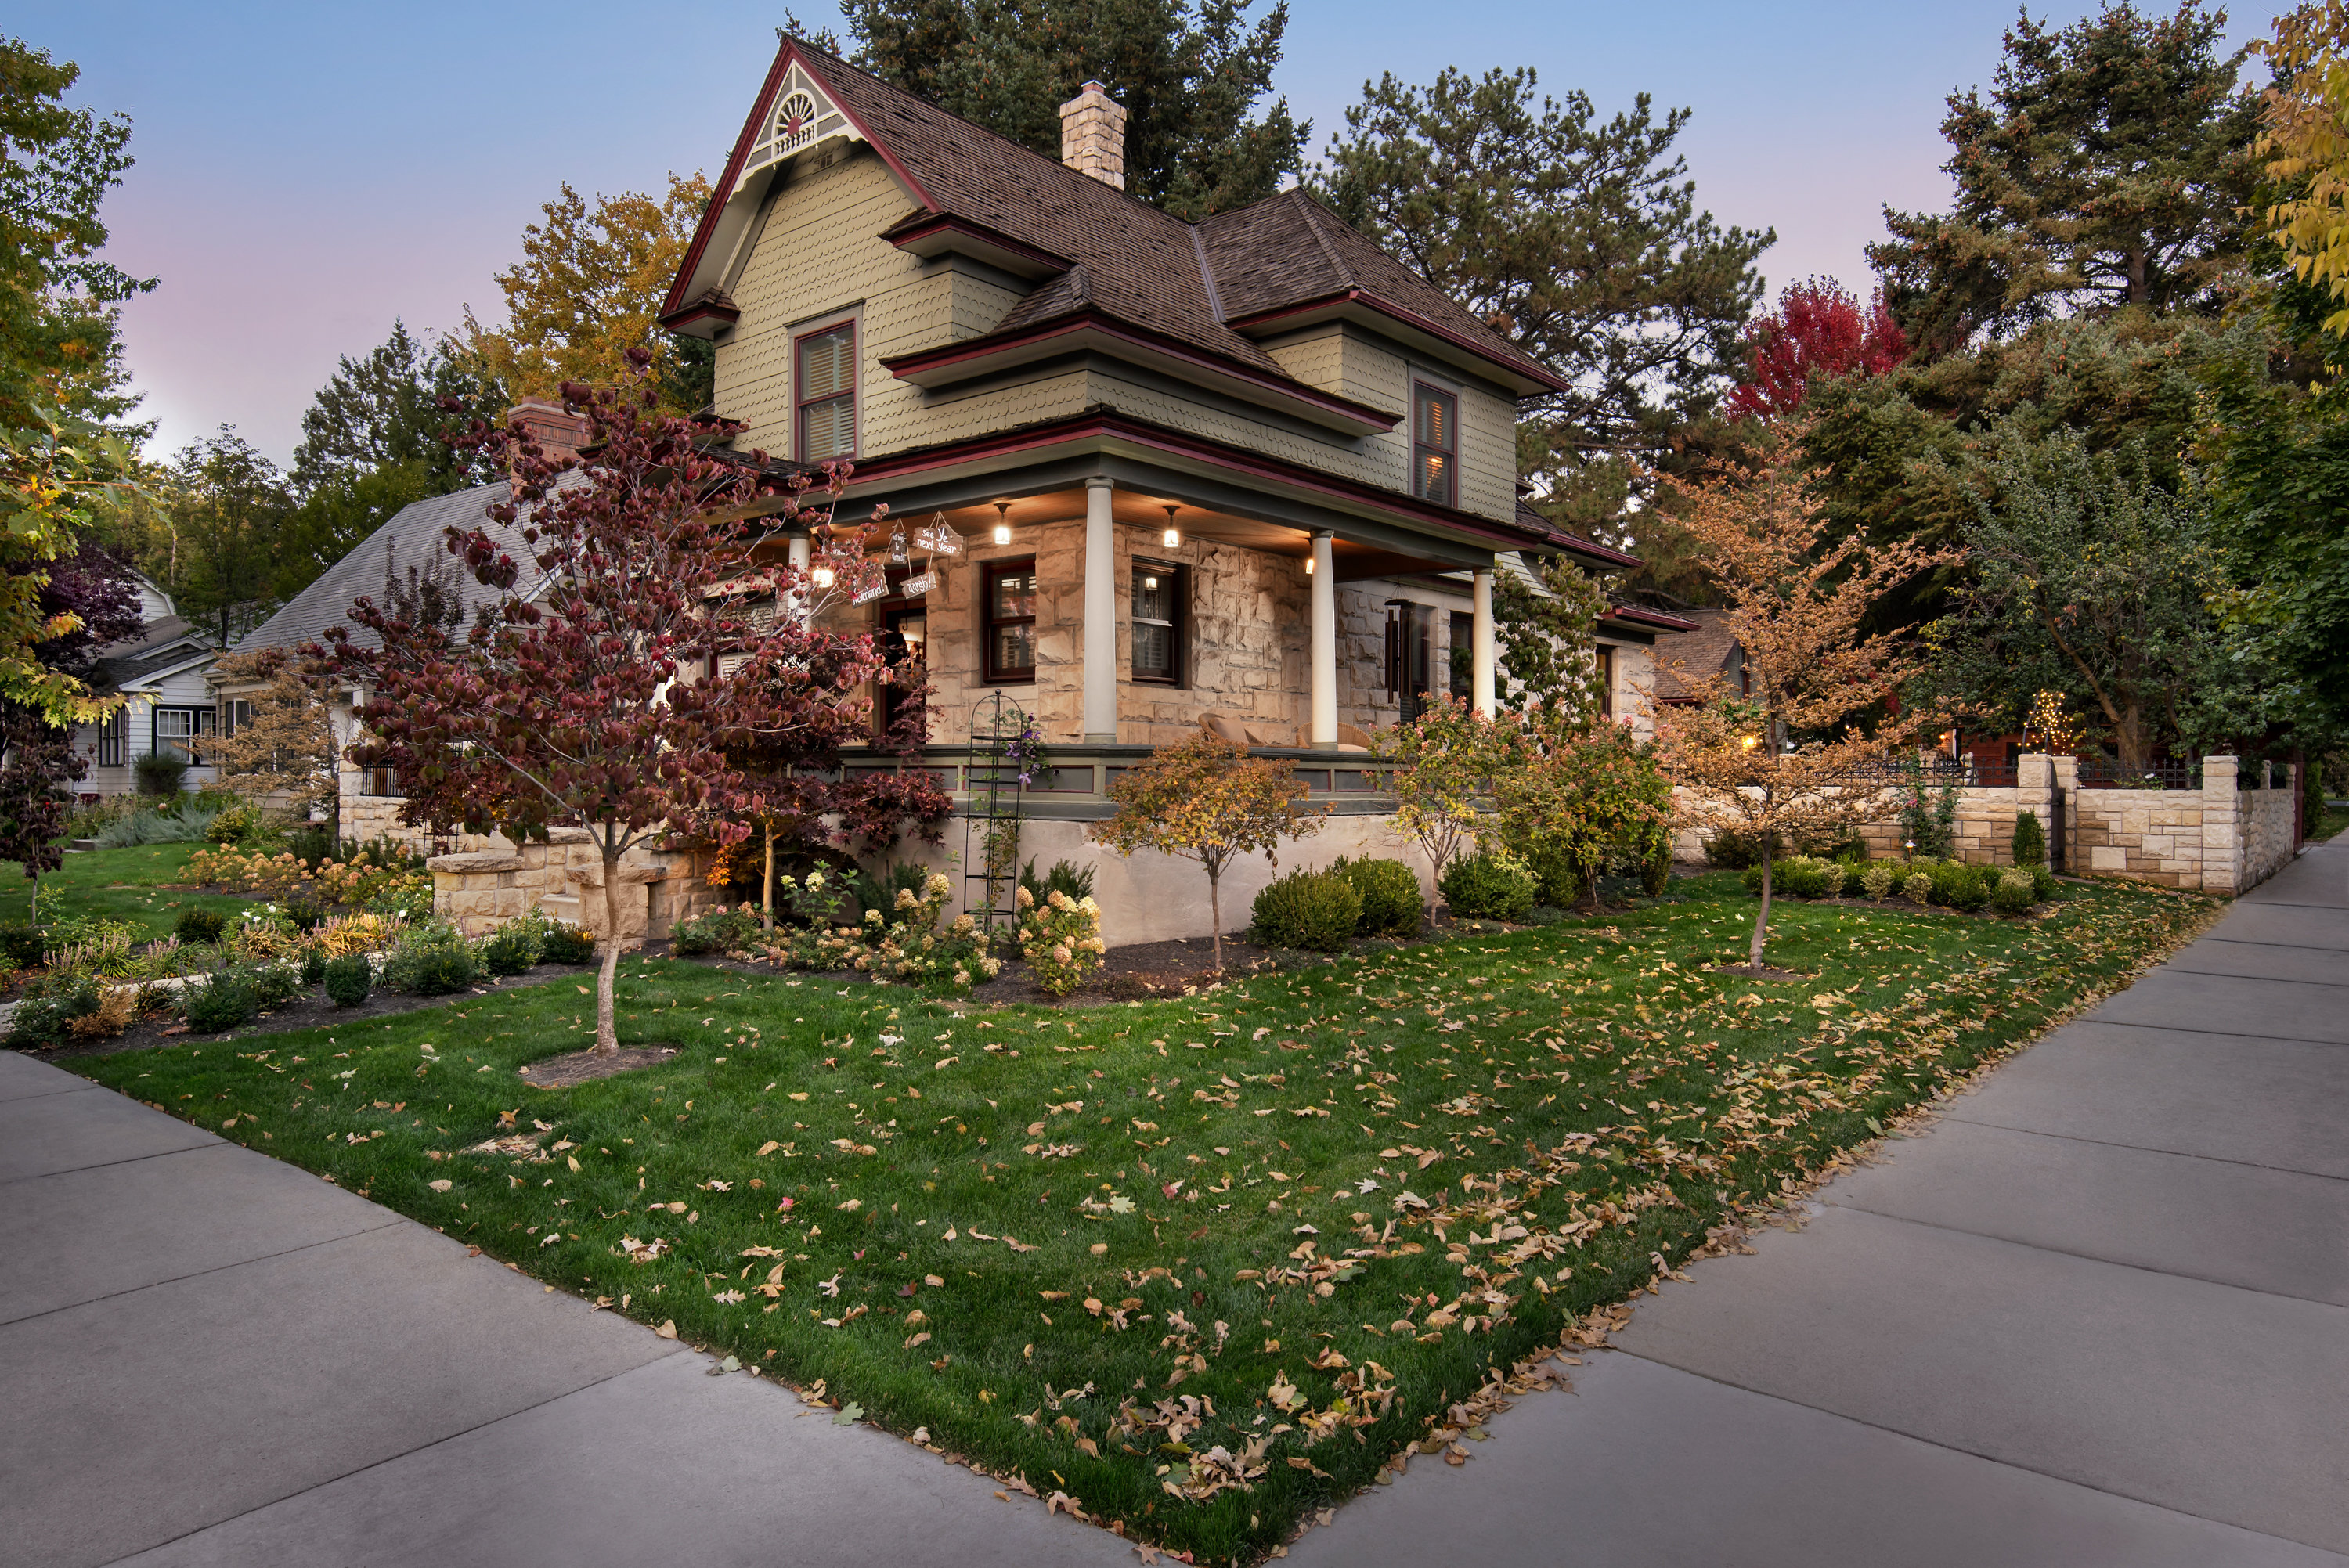 Boise Historic Home and Custom Landscape